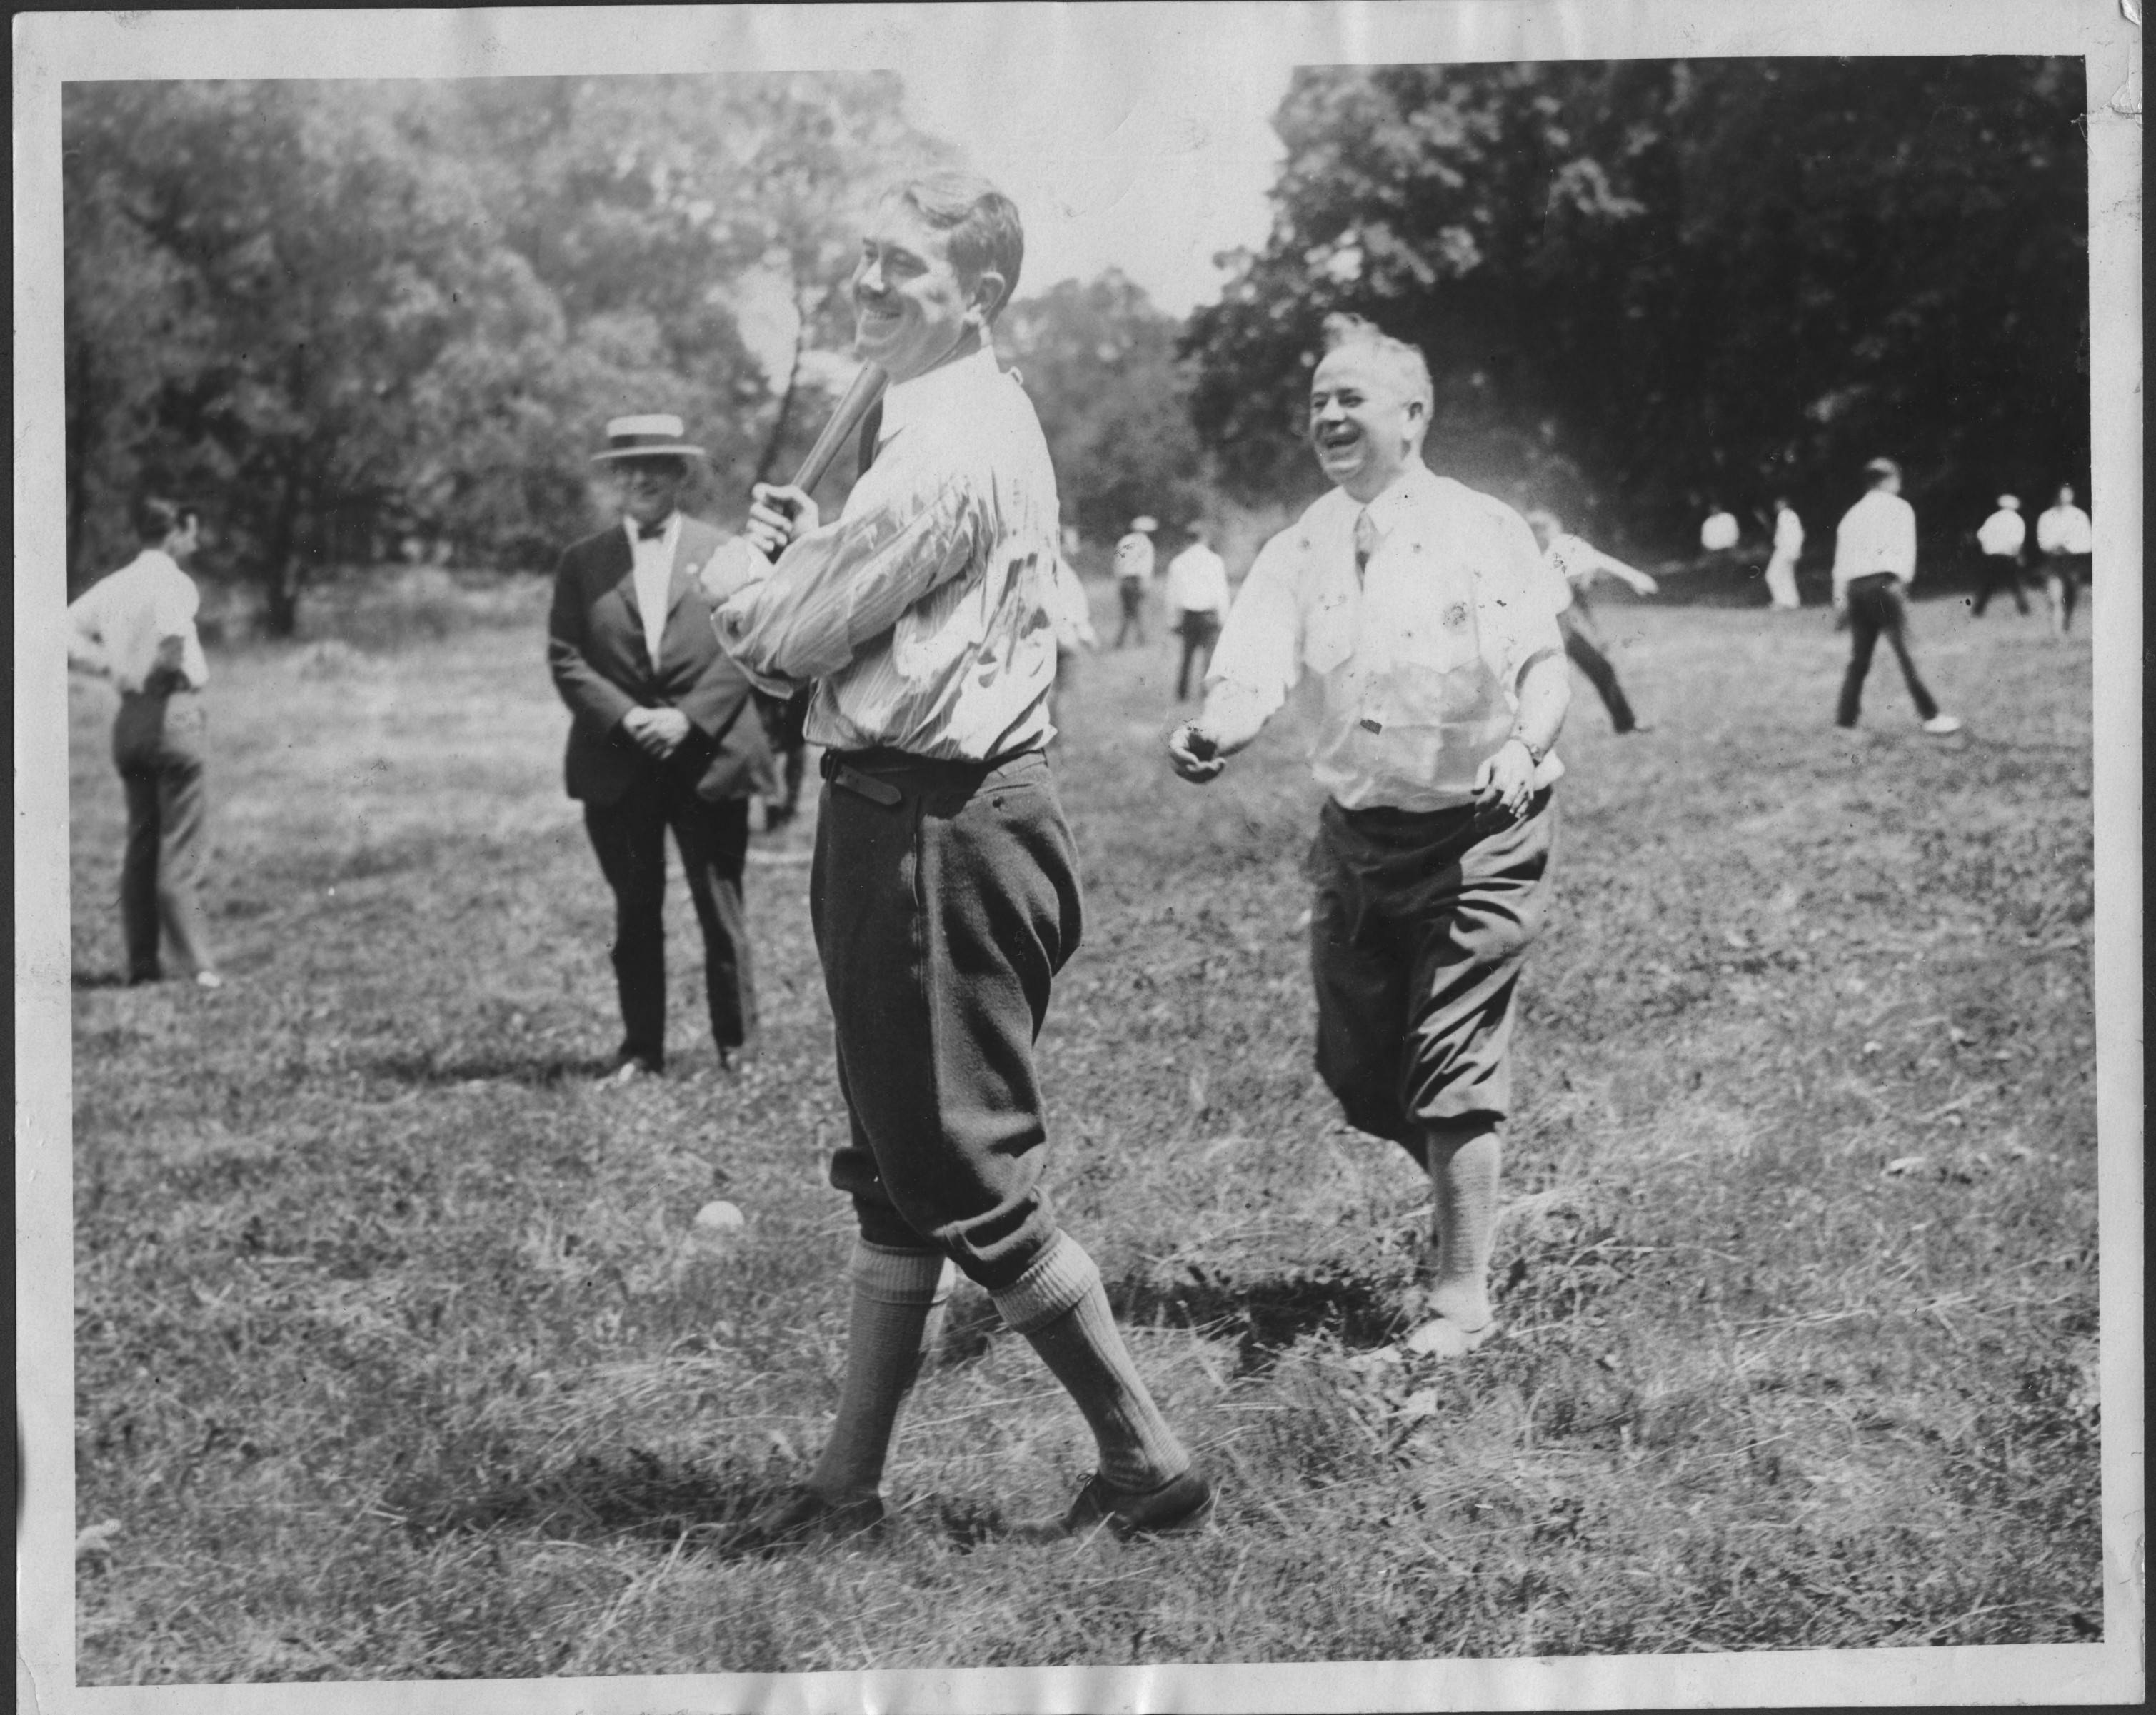 Col. Robert R. McCormick plays baseball at Cantigny, where he lived for 35 years until his death in 1955. The park will celebrate his birthday with festivities on Wednesday, July 30.